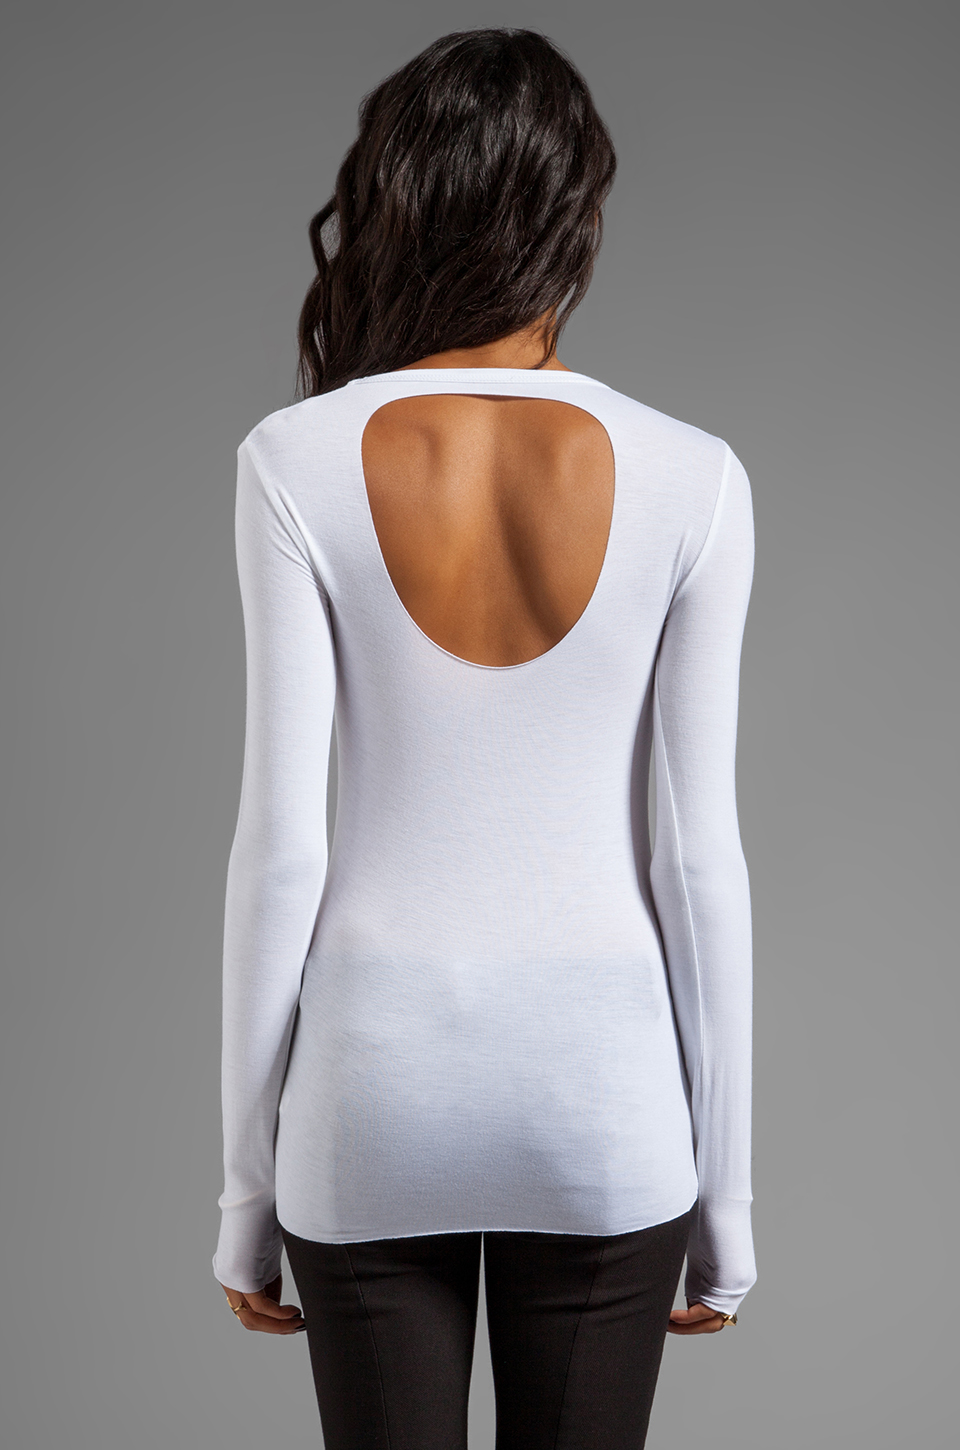 Bailey 44 Screenshot Top in White